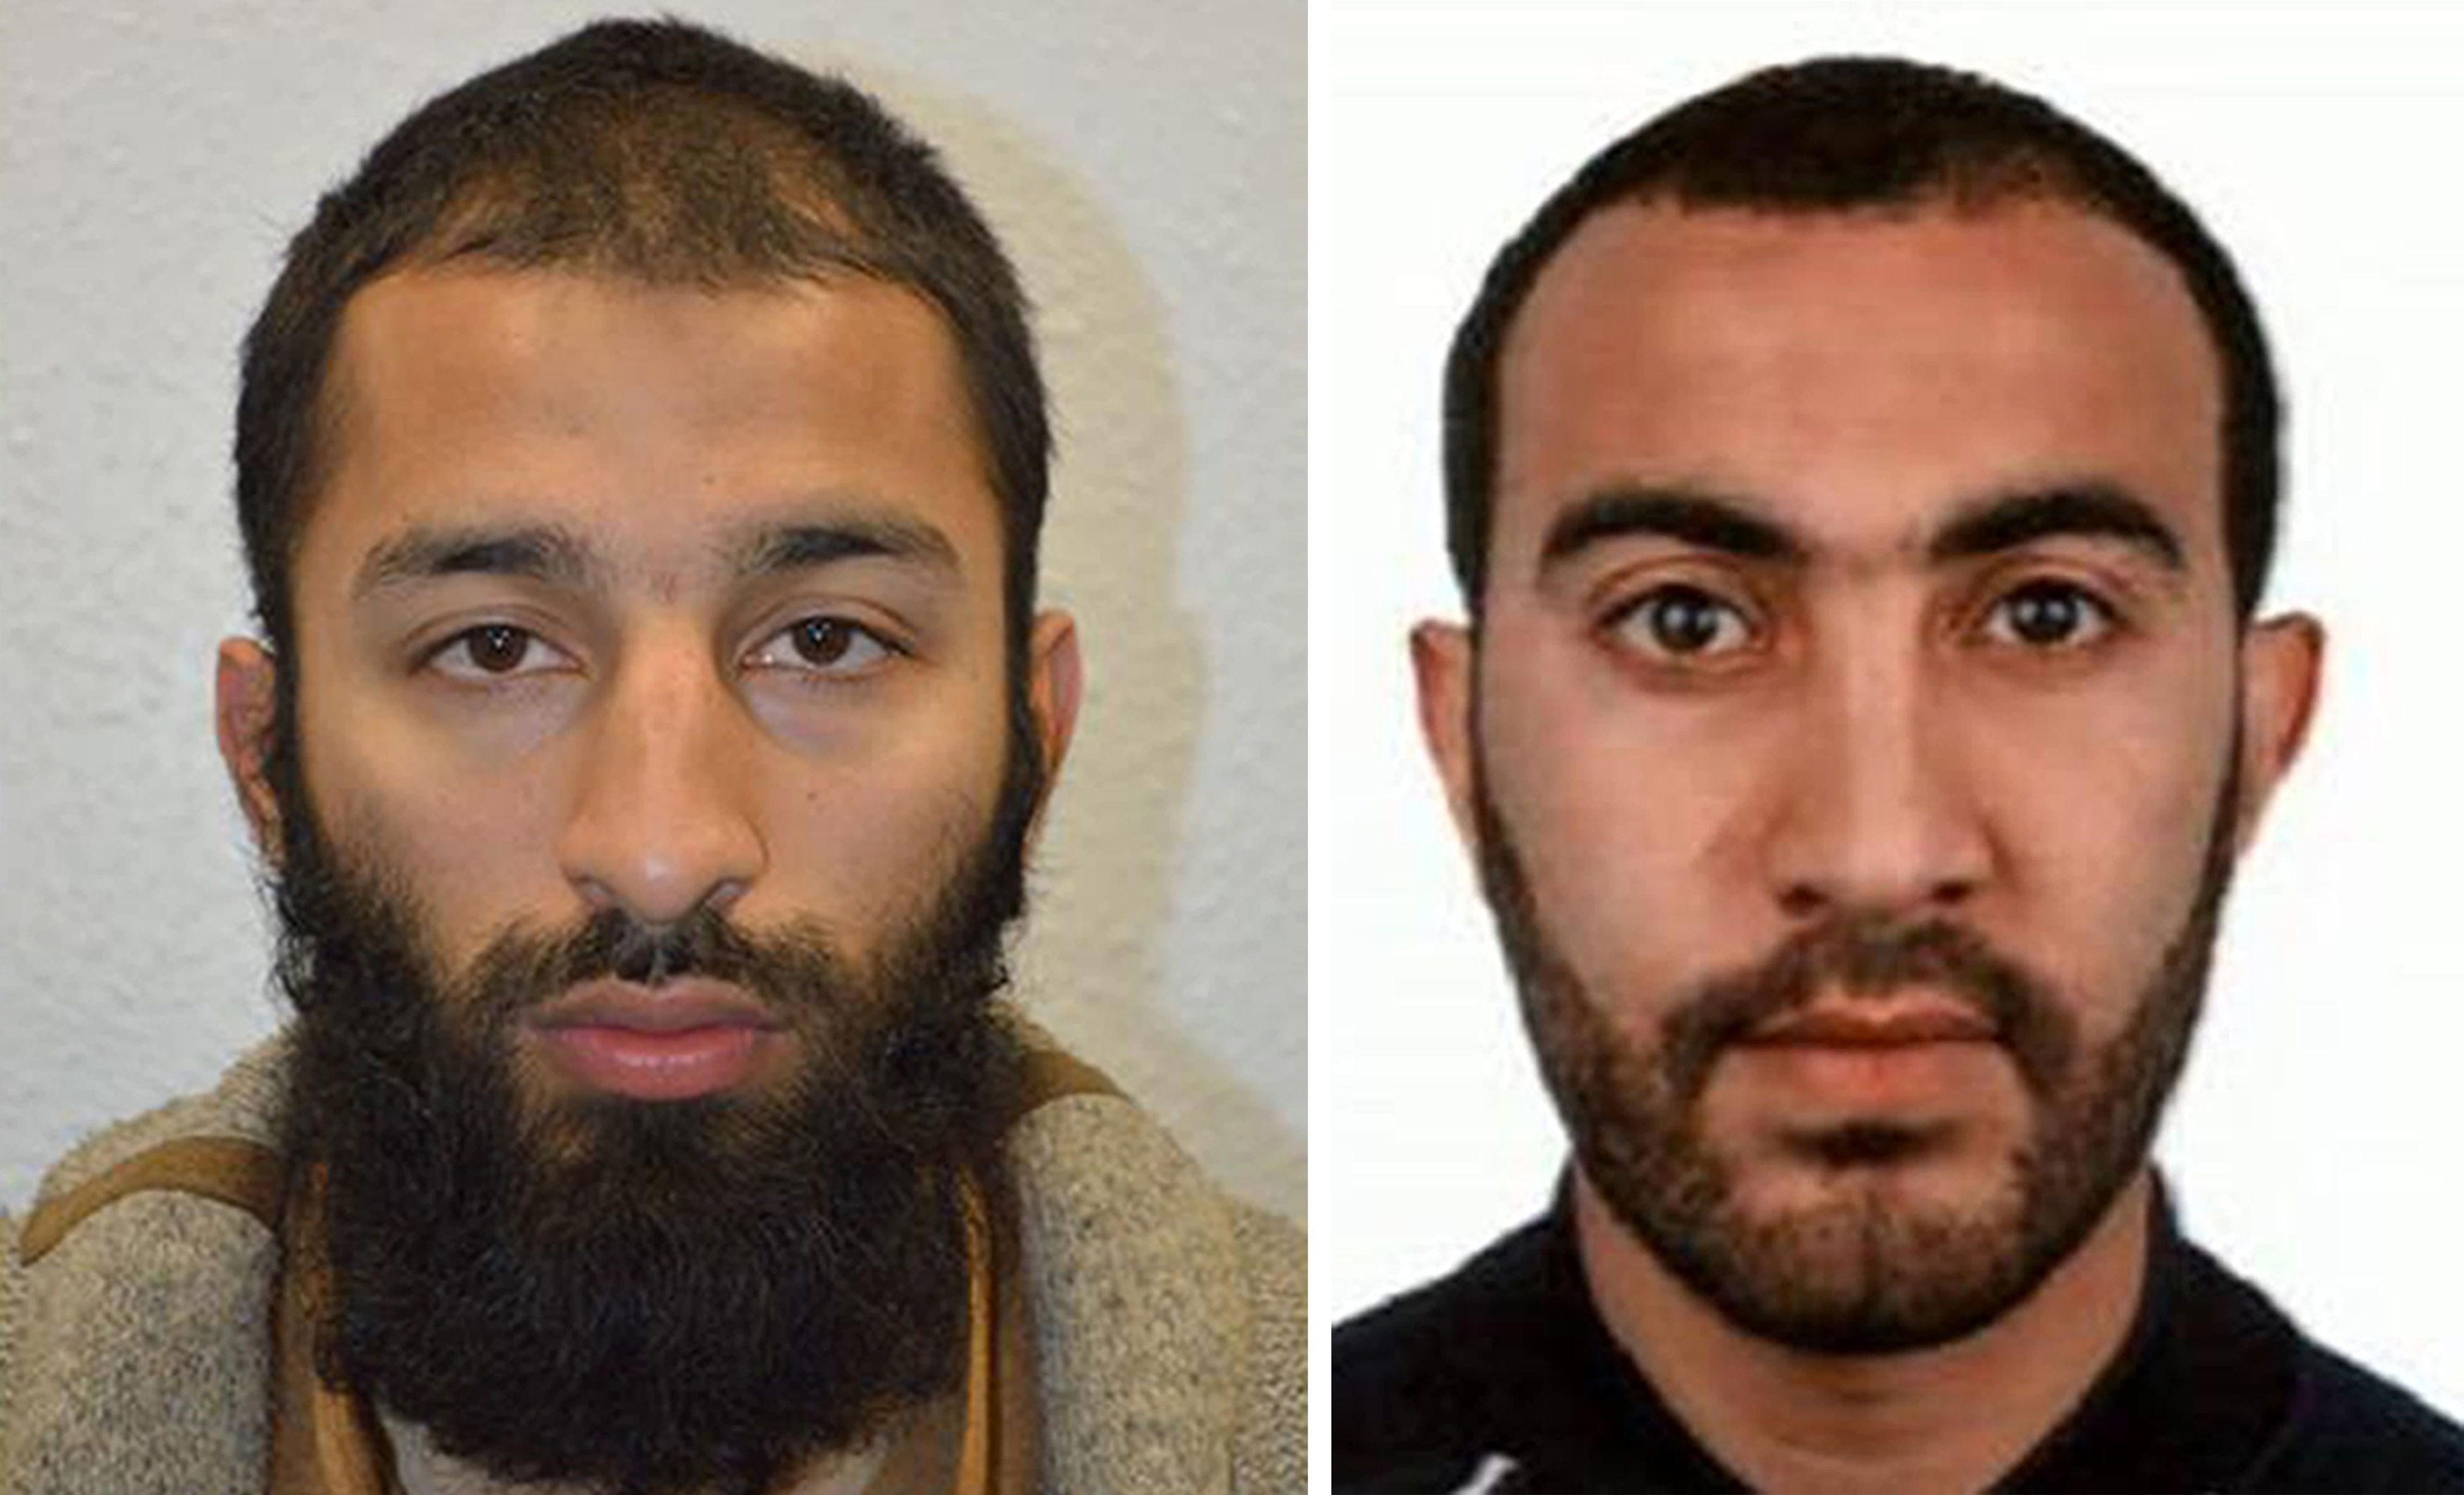 Khuram Shazad Butt (left) and  Rachid Redouane  who has been named as two of the men shot dead by police following the terrorist attack on London Bridge and Borough Market.